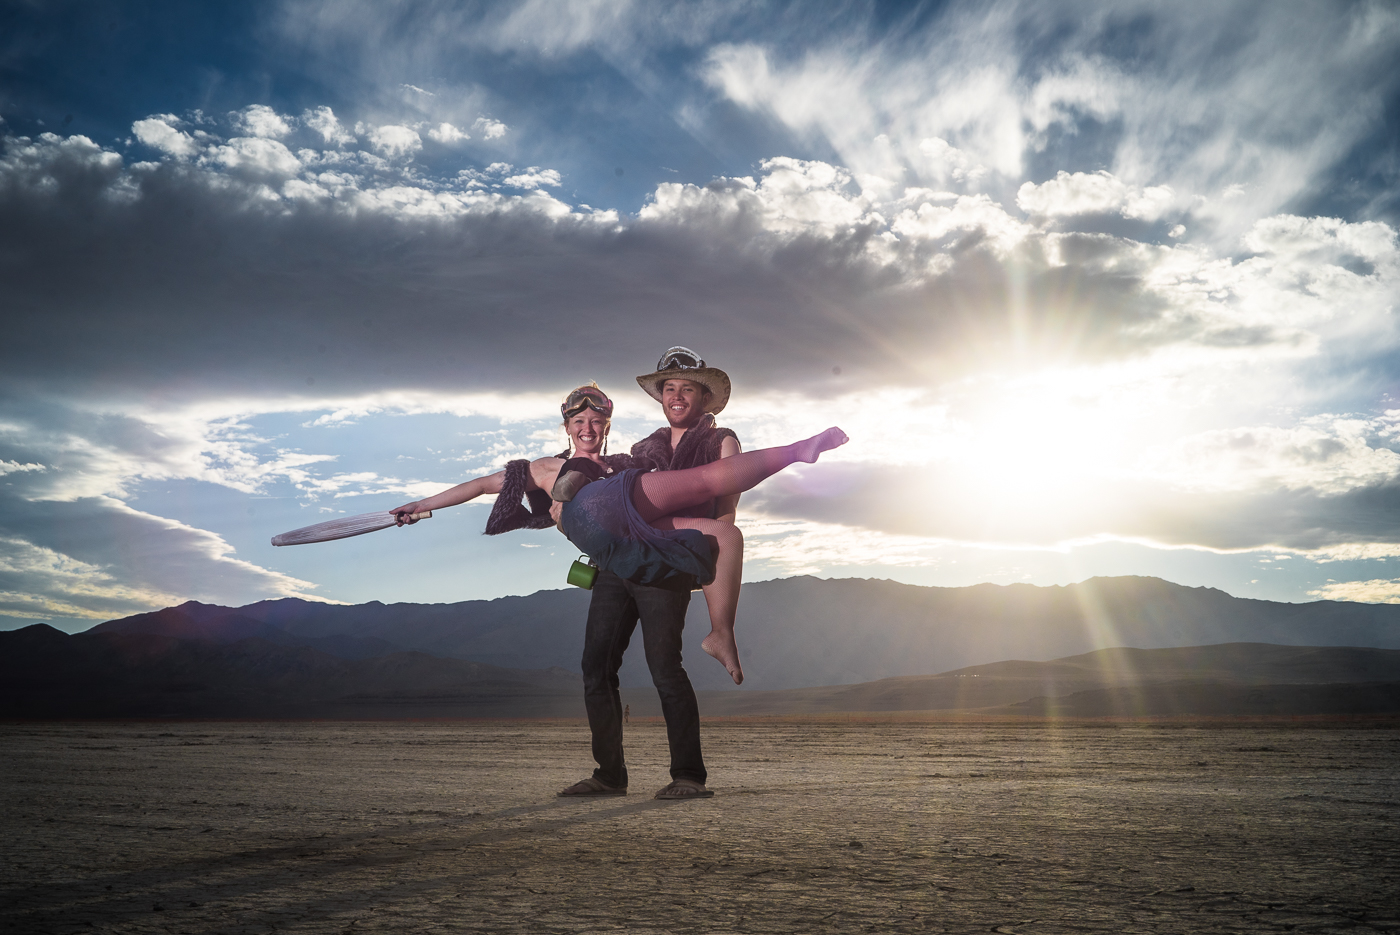 Burning Man 2014: Portraits of a Camp couples portraits on northtosouth.us